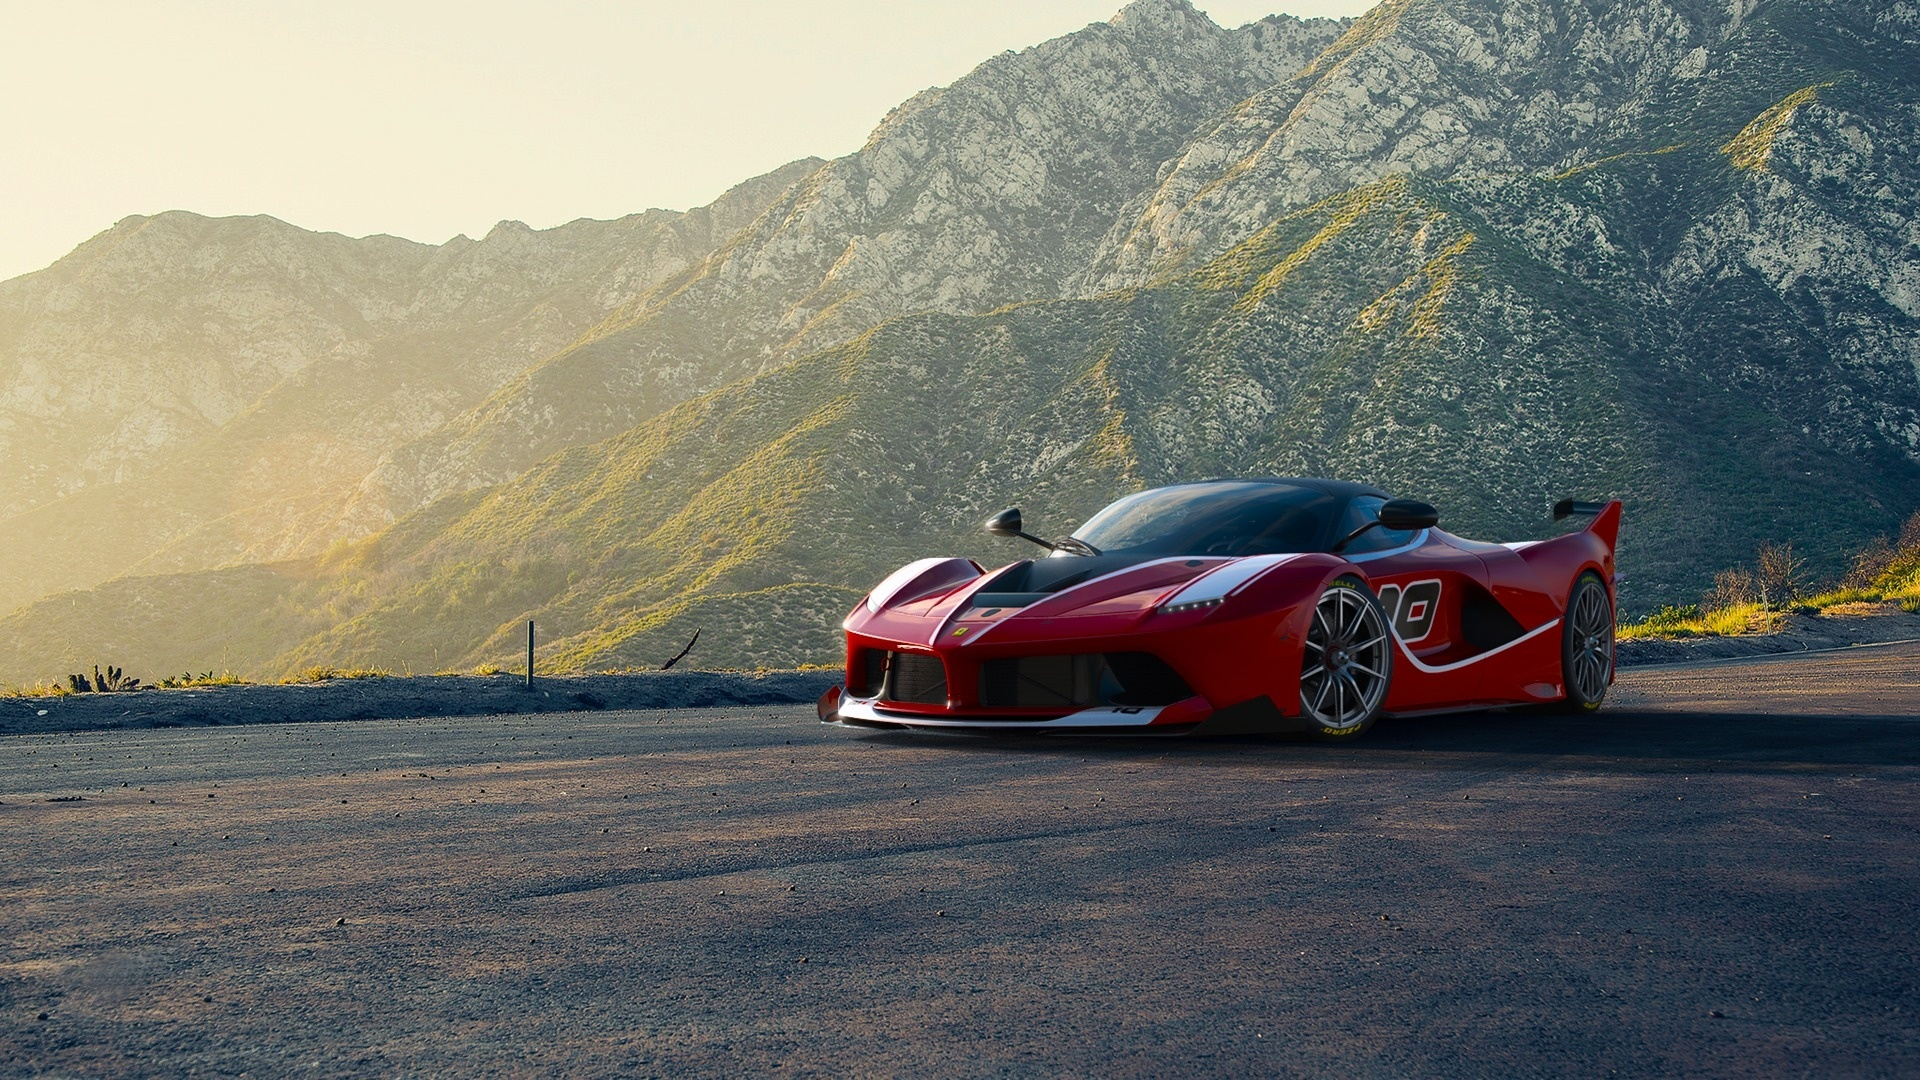 Free Download Ferrari Fxxk Wallpaper Full Hd 1920x1080 For Your Desktop Mobile Tablet Explore 32 Ferrari Fxx K Wallpapers Ferrari Fxx K Wallpapers Ferrari Fxx Wallpapers K Wallpapers